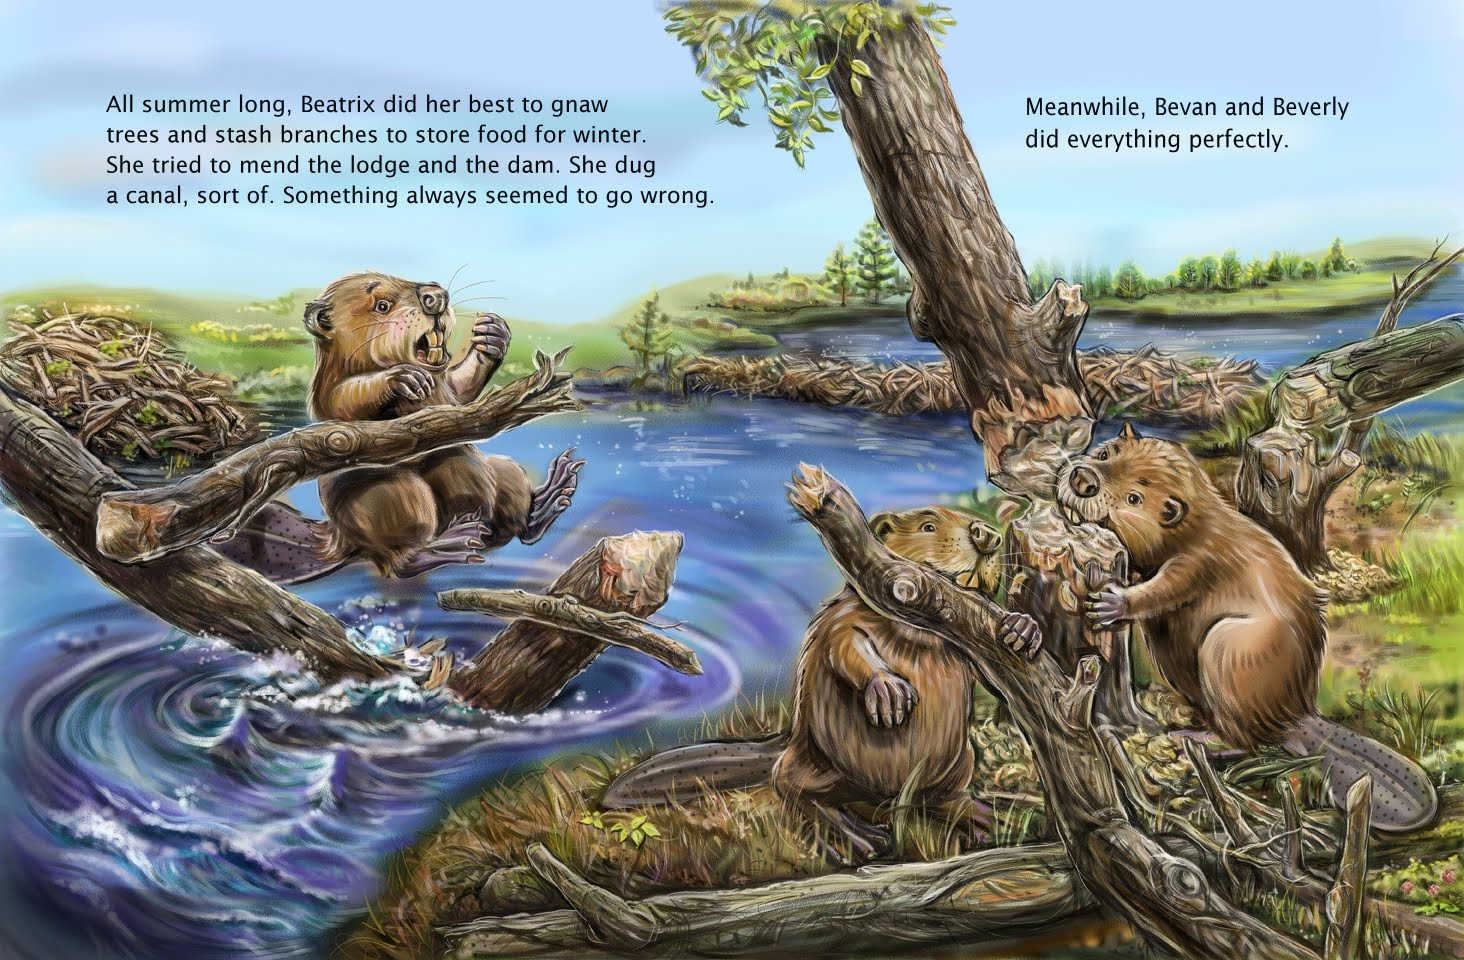 how do beavers know how to build dams